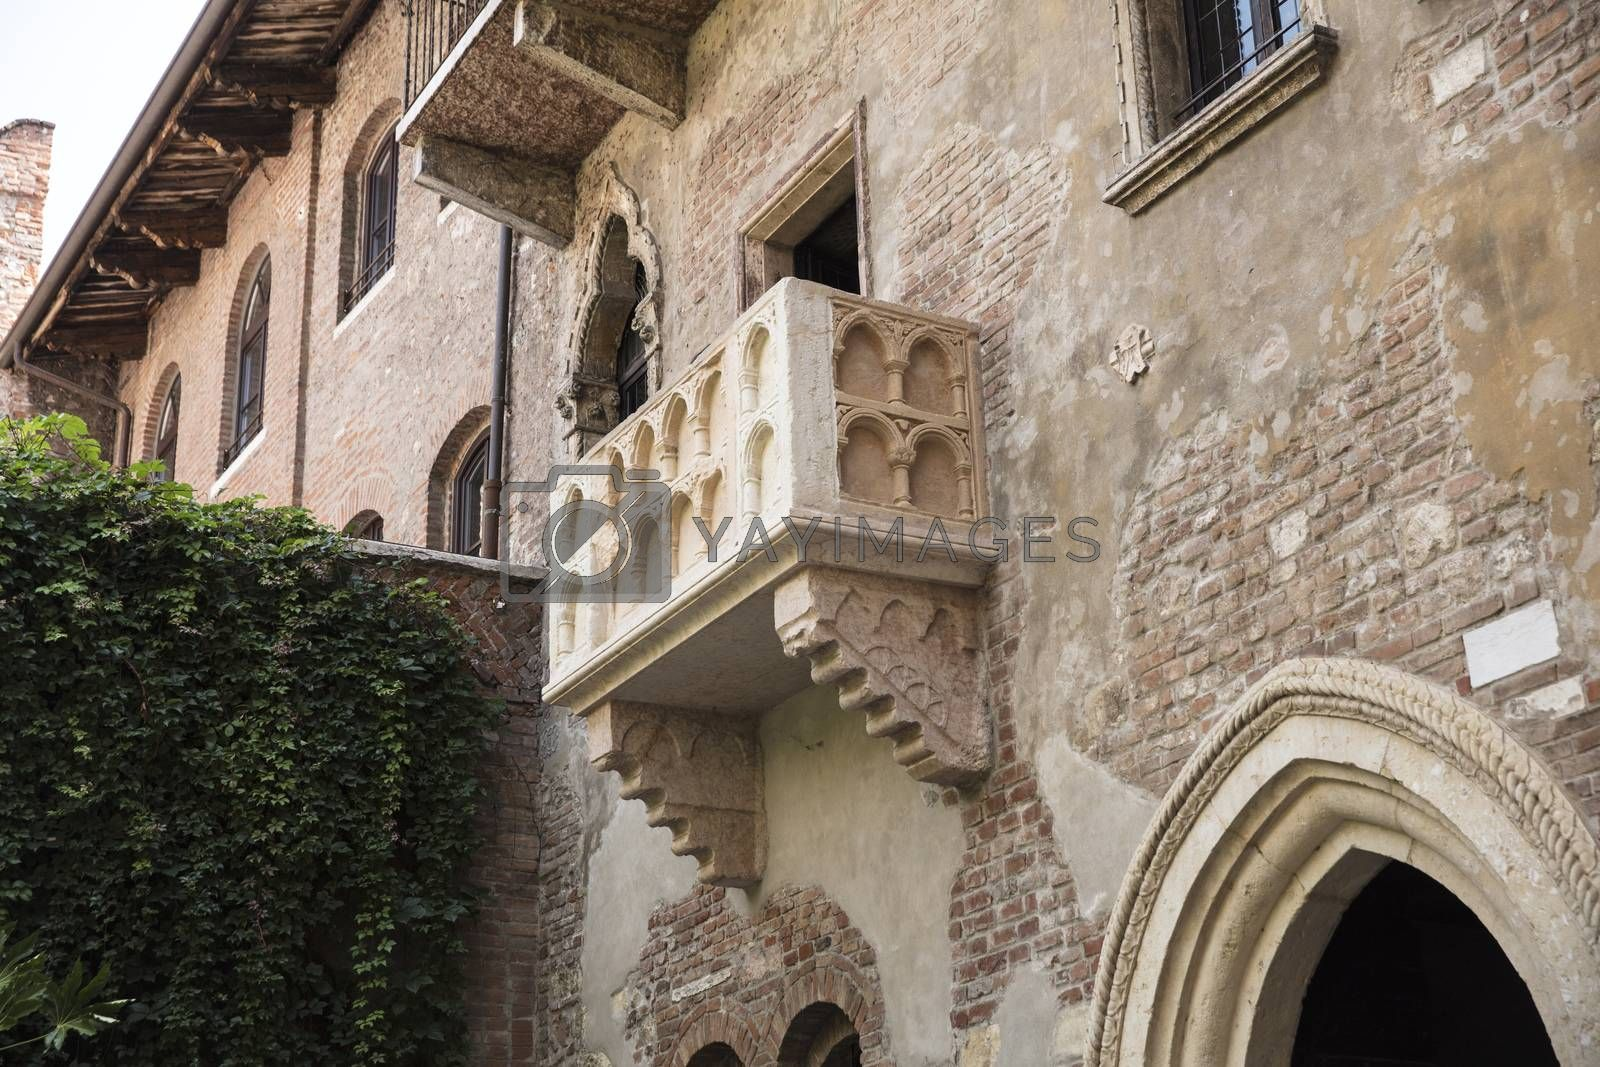 Verona, Italy, Europe, August 2019, the Balcony from Romeo and Juliet